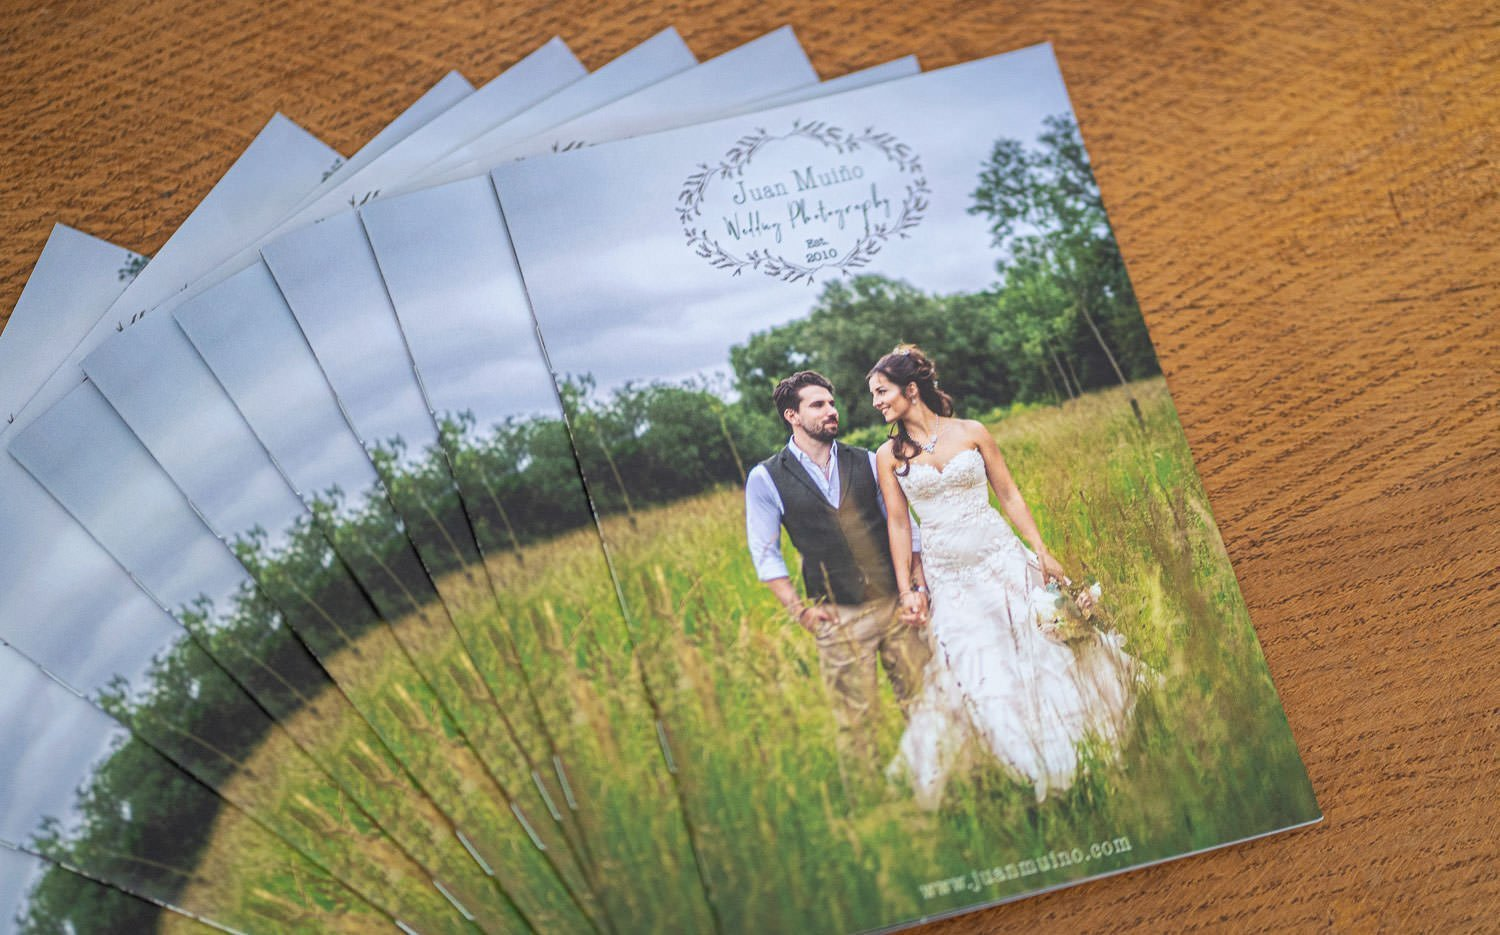 collection of our wedding photography brochure fanned out on a table.